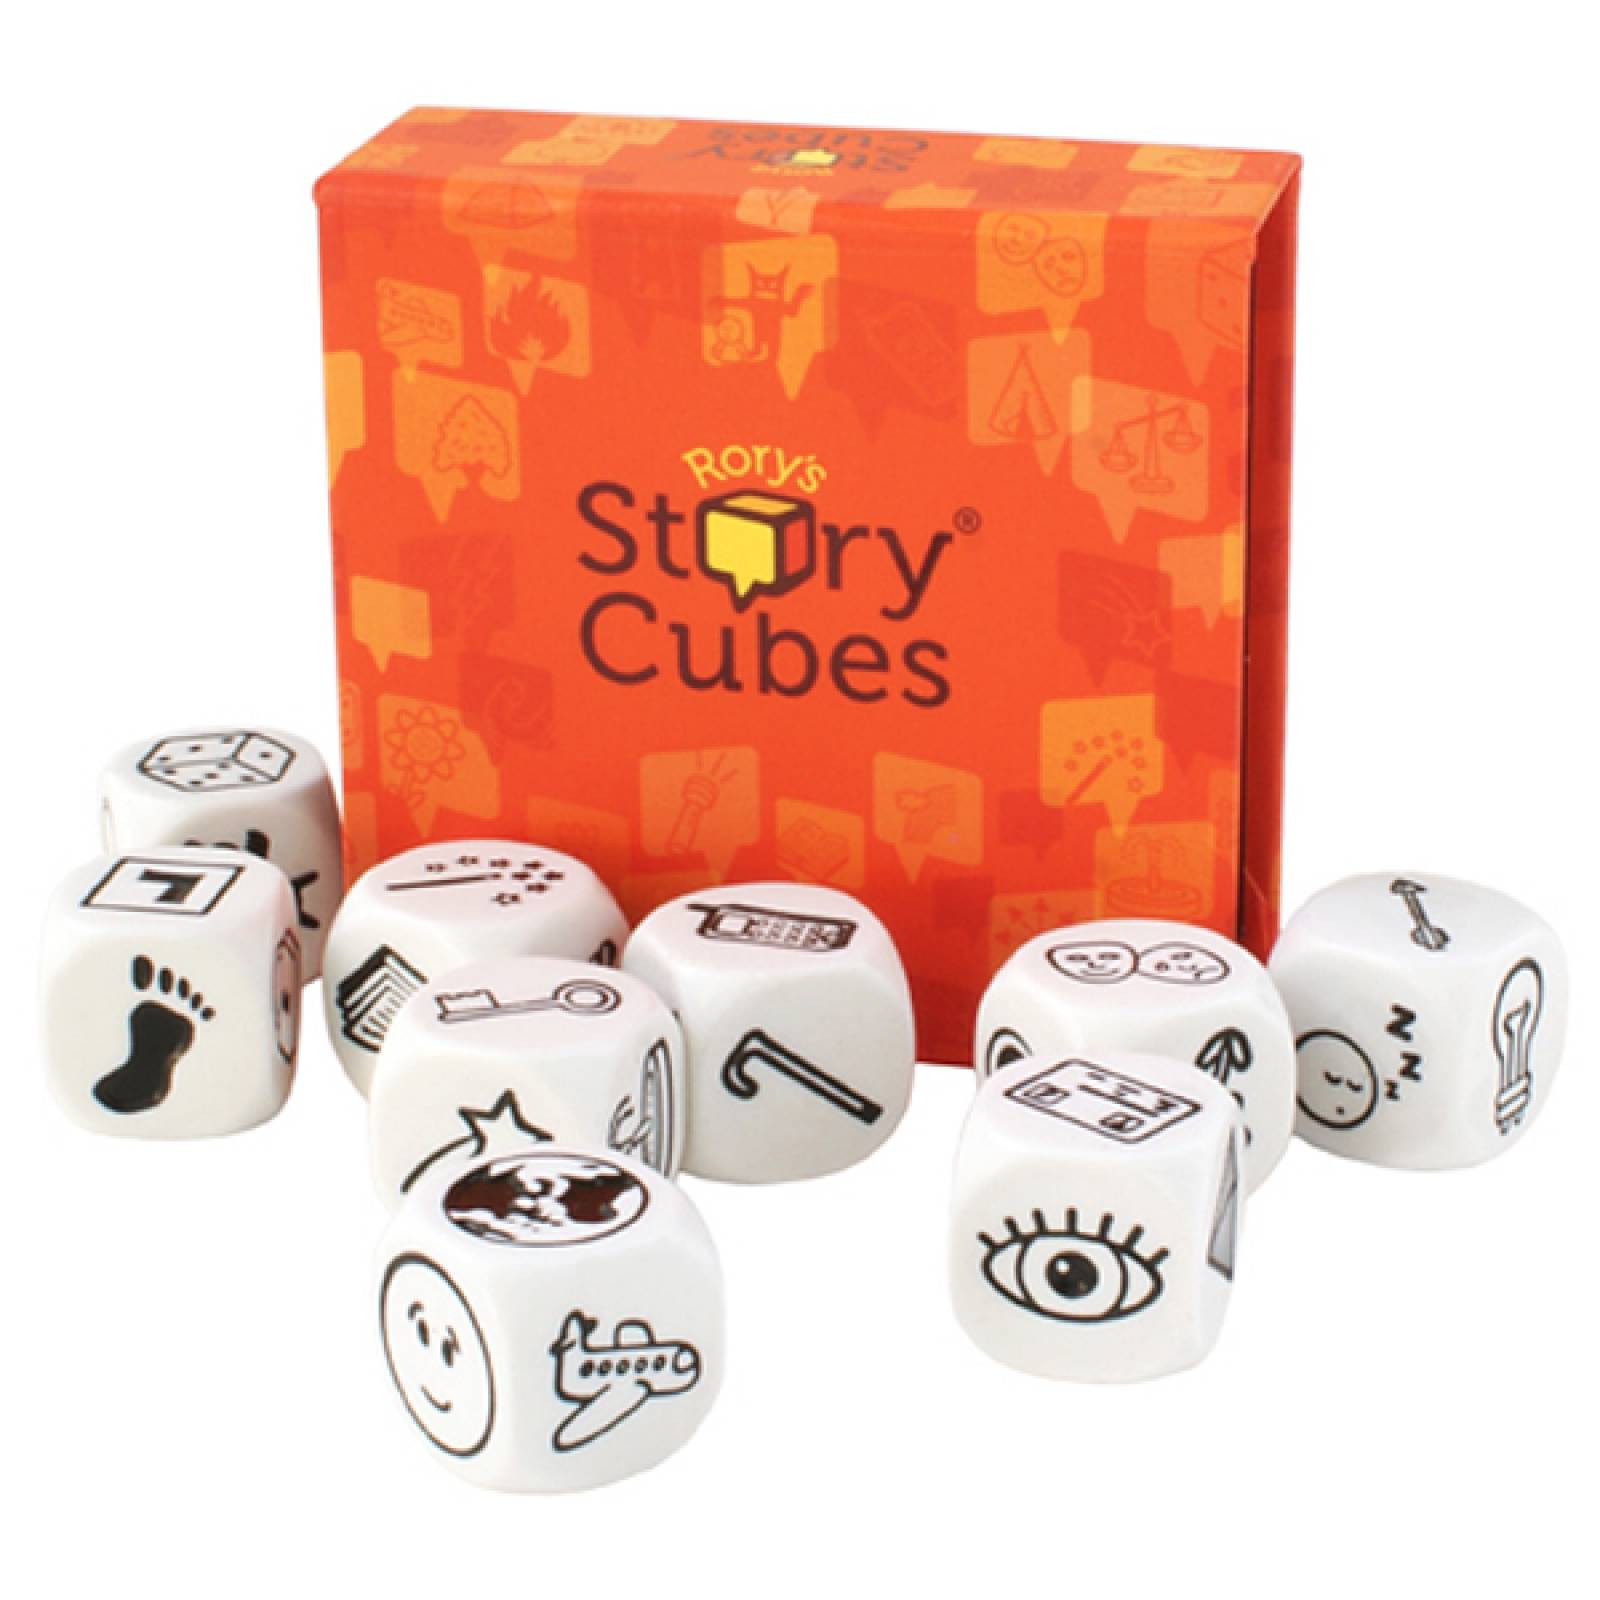 Rory's Story Cubes 6+